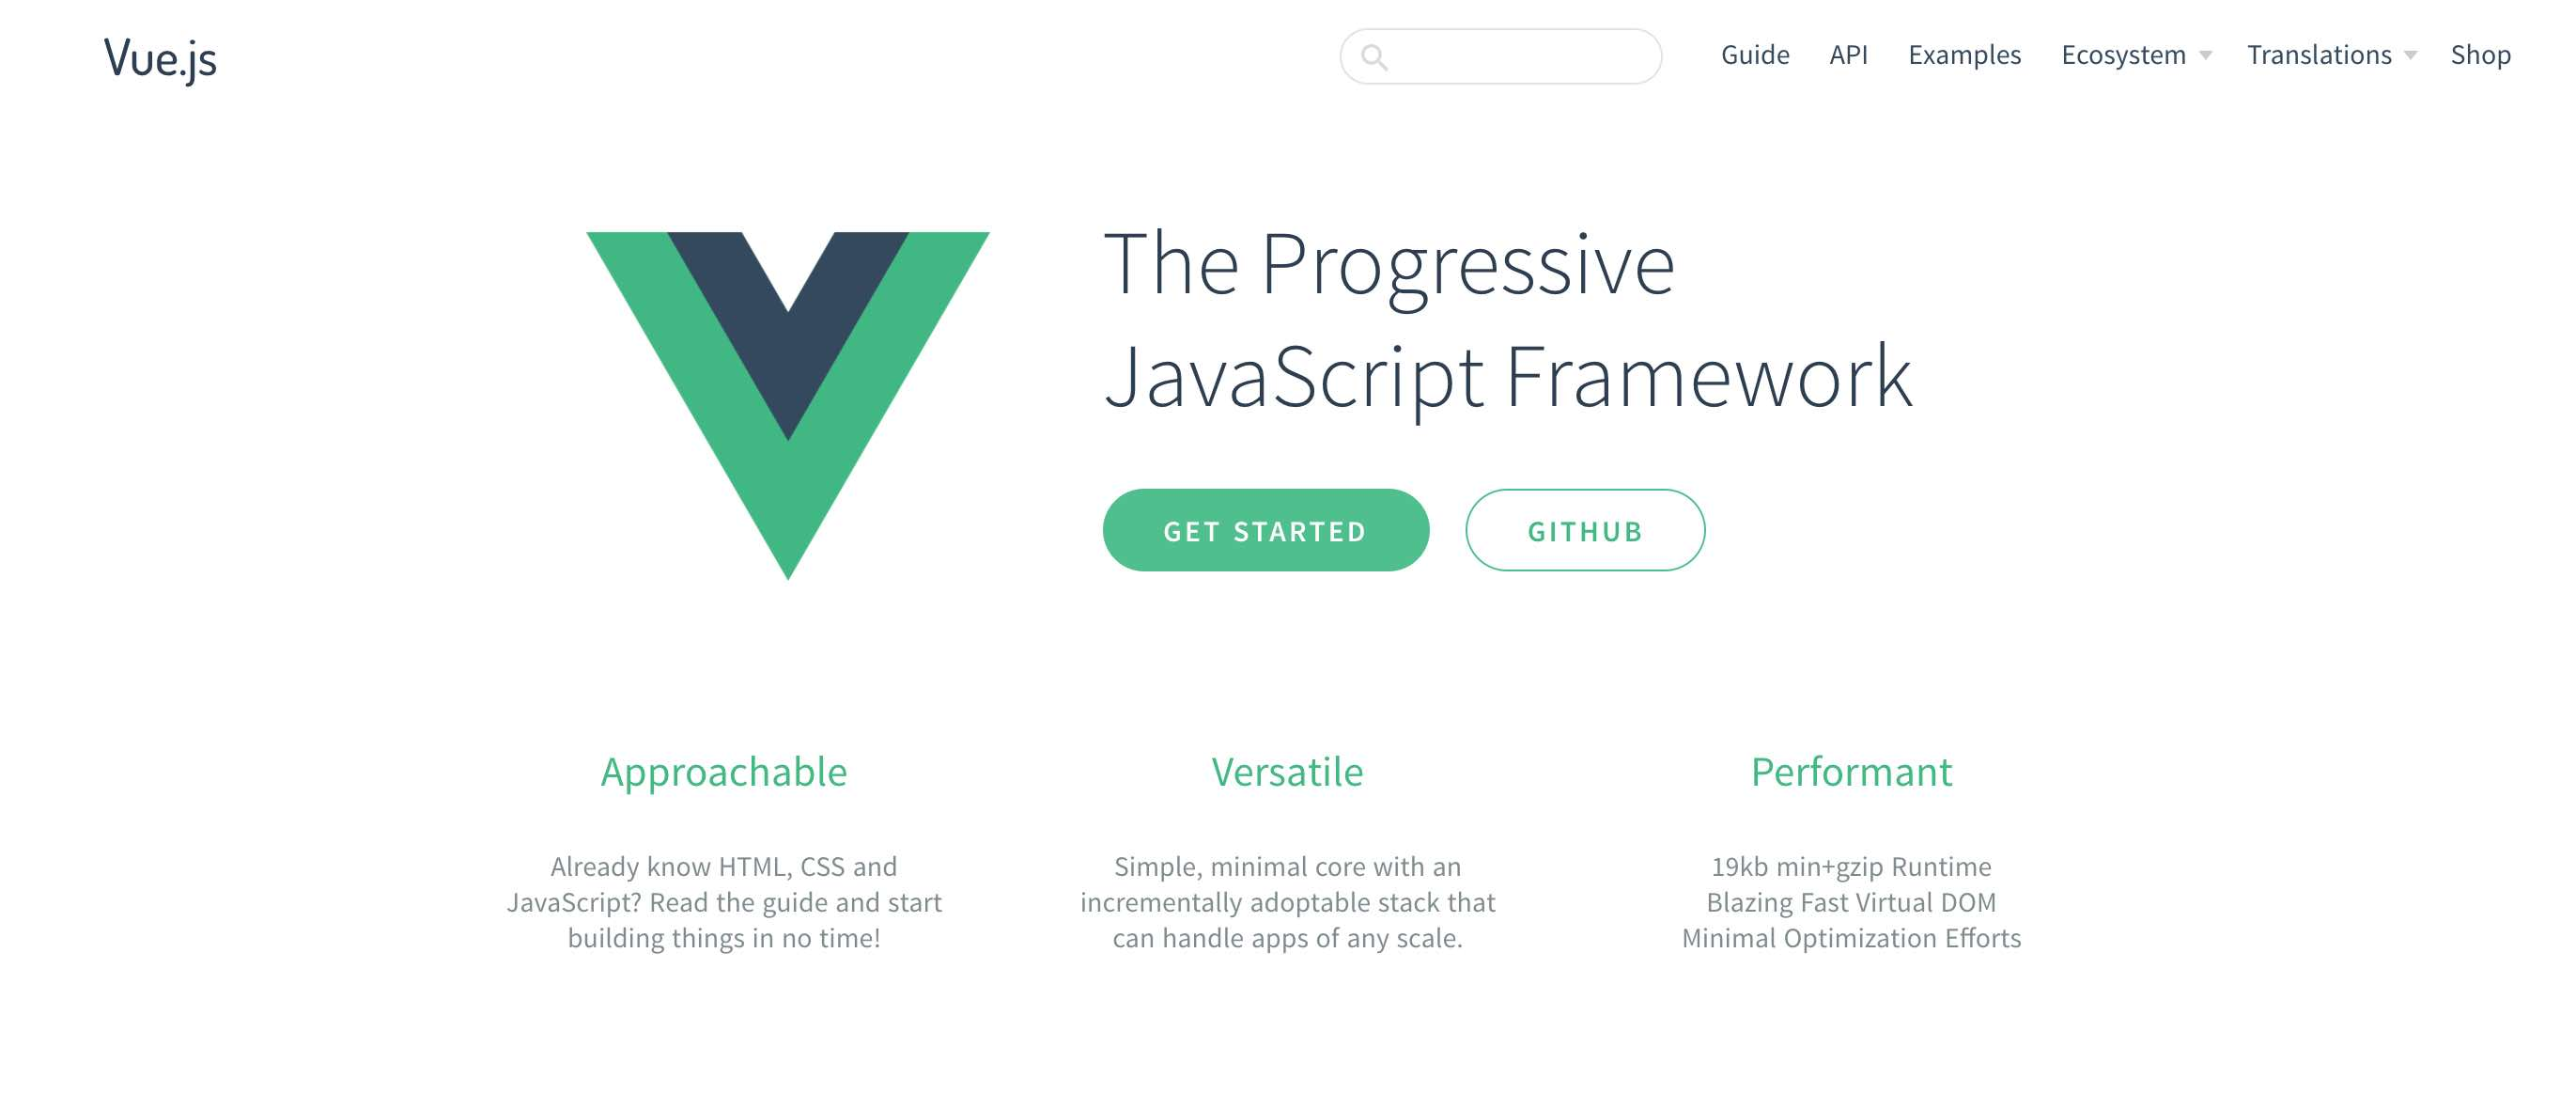 First impressions of Vue.js